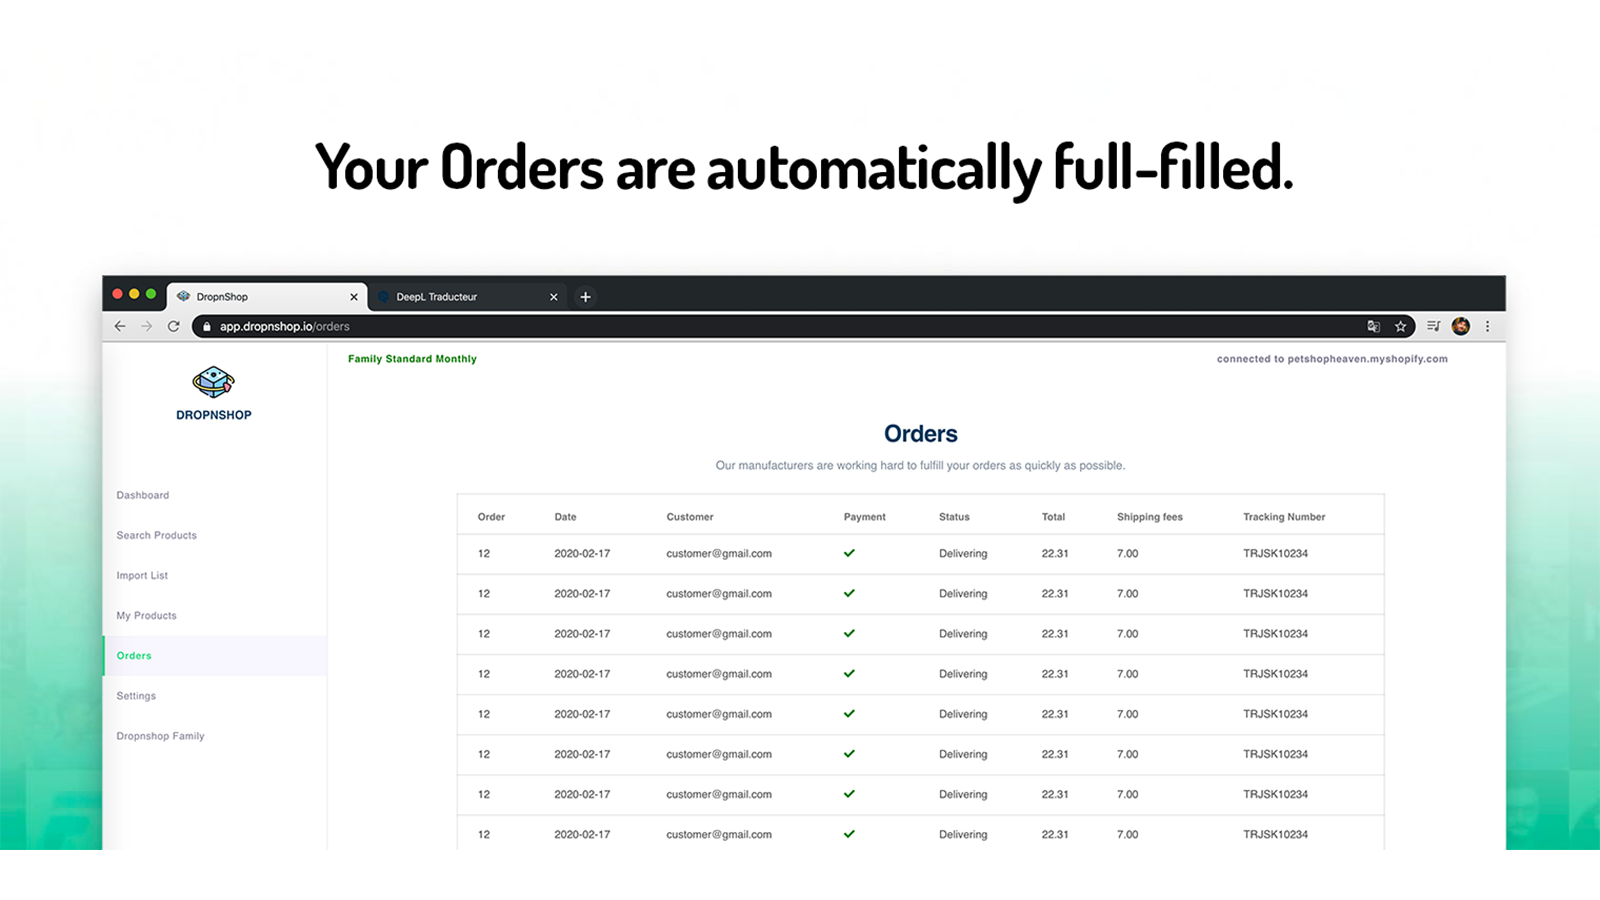 Your Orders are automatically full-filled.